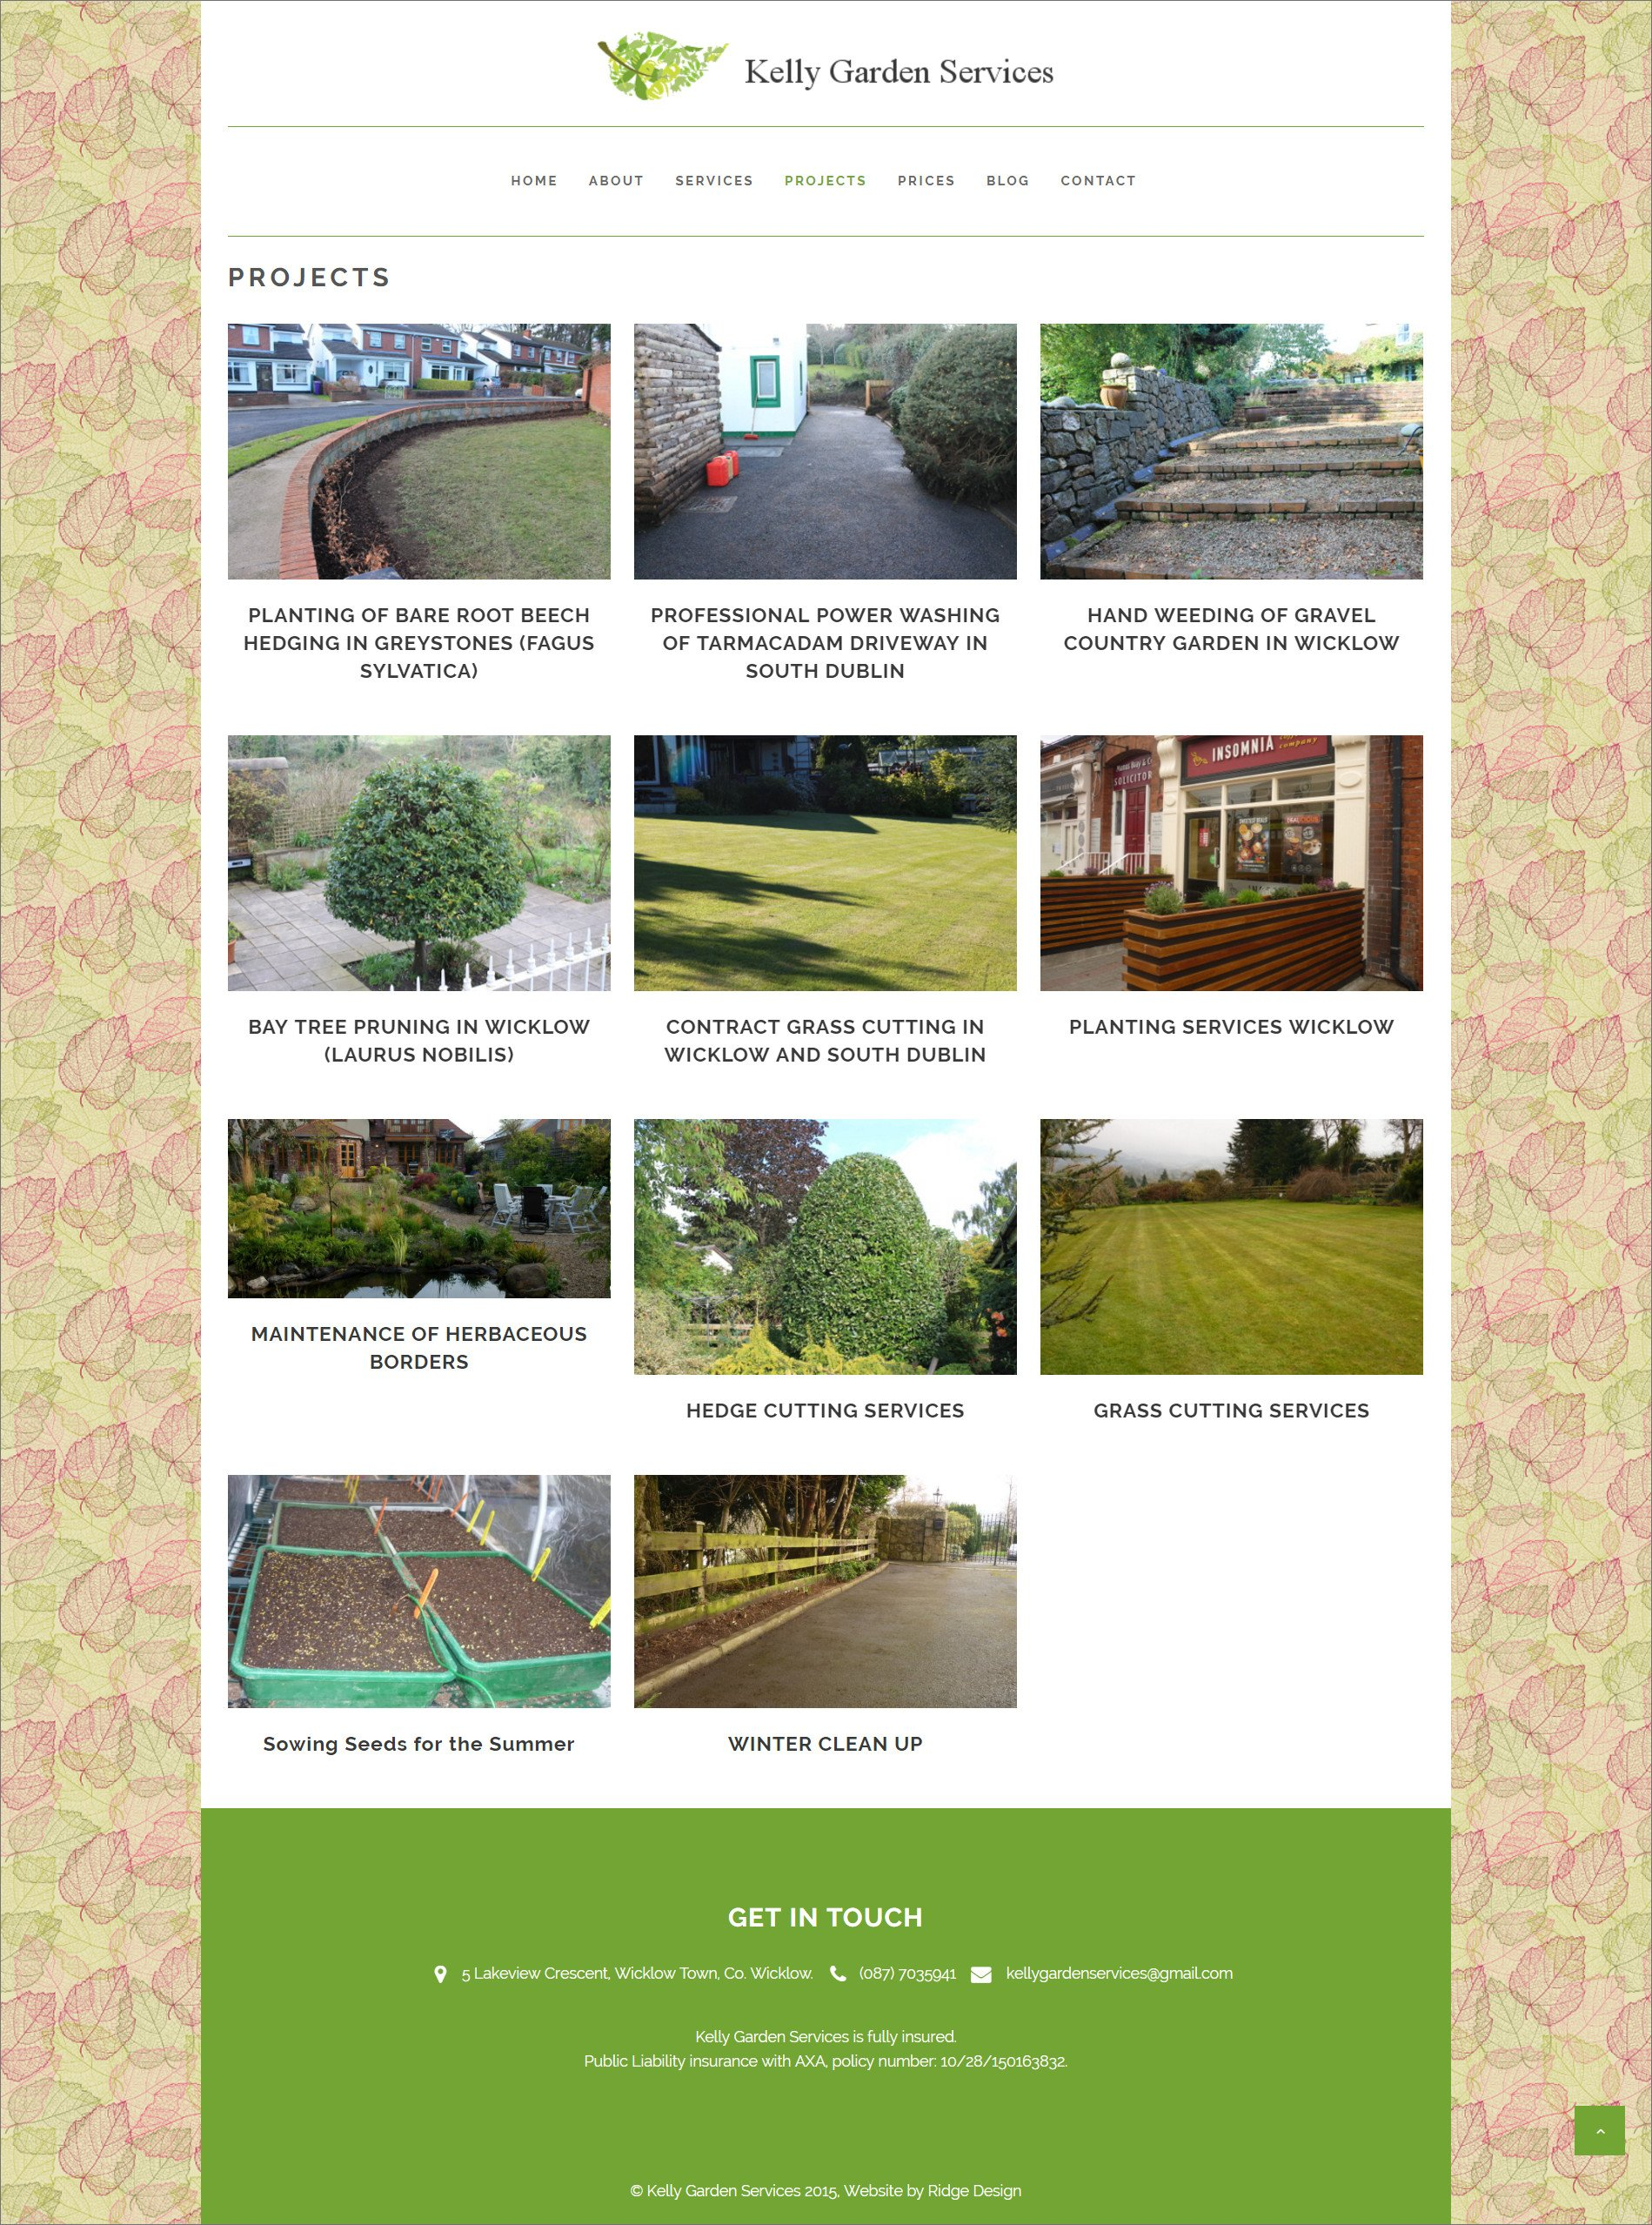 Kelly Gardening Services website designed by Ridge Design visual of projects page